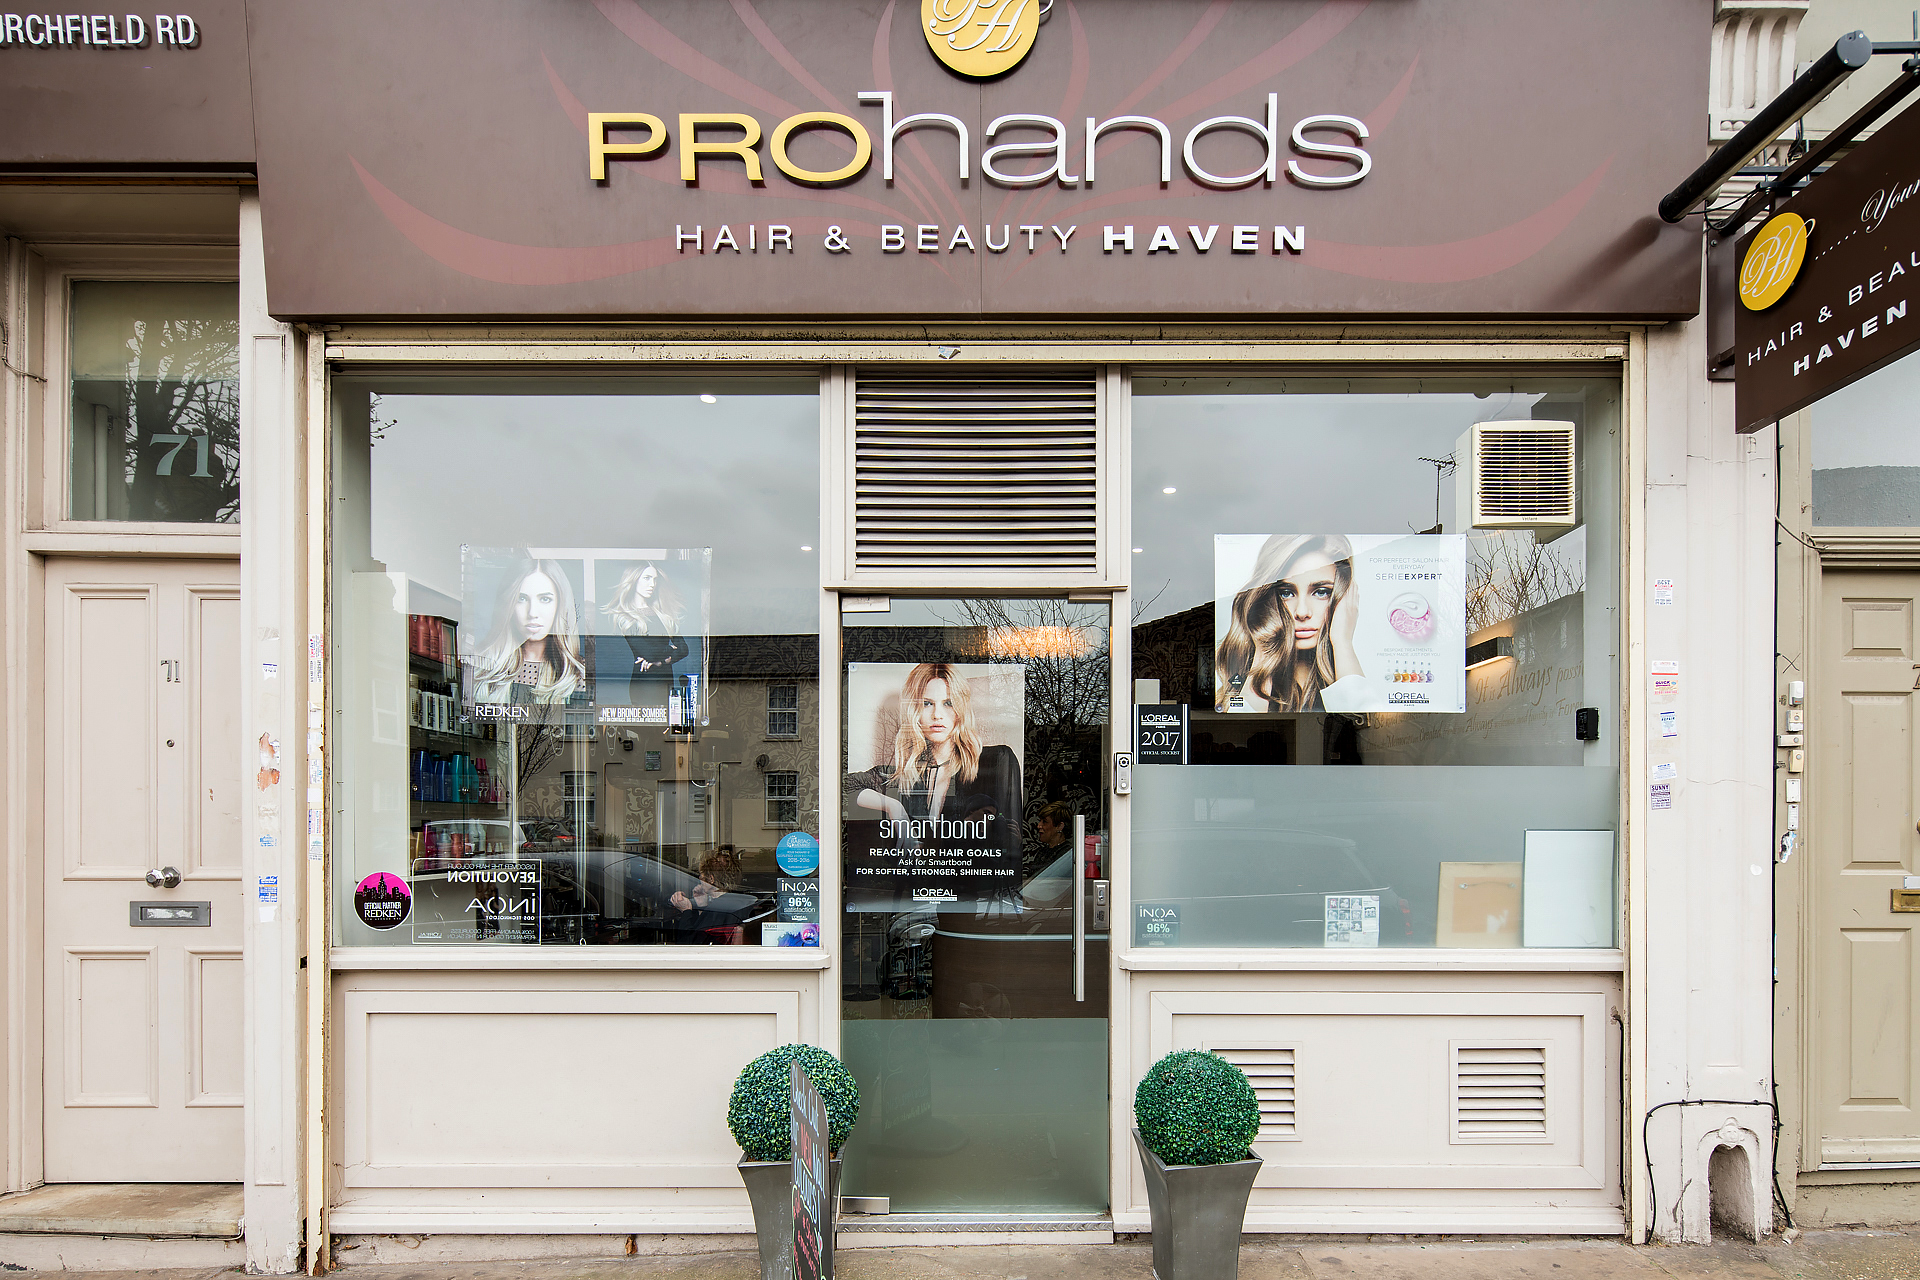 Openingtimes. - ProHands HAIR Haven To book an appointment please call:0208 992 2616 Monday: 9.30am - 7pm Tuesday: 9.30am - 7pm Wednesday: 9.30am - 7pm Thursday: 9.30am - 7pm Friday: 9.30am - 7pm Saturday: 9.30am - 7pmProHands BEAUTY Haven To book an appointment please call:0208 992 2110 Monday: CLOSED Tuesday: 10am - 8pm Wednesday: 10am - 7pm Thursday: 10am - 7pm Friday: 10am - 6pm Saturday: 10am - 4pm